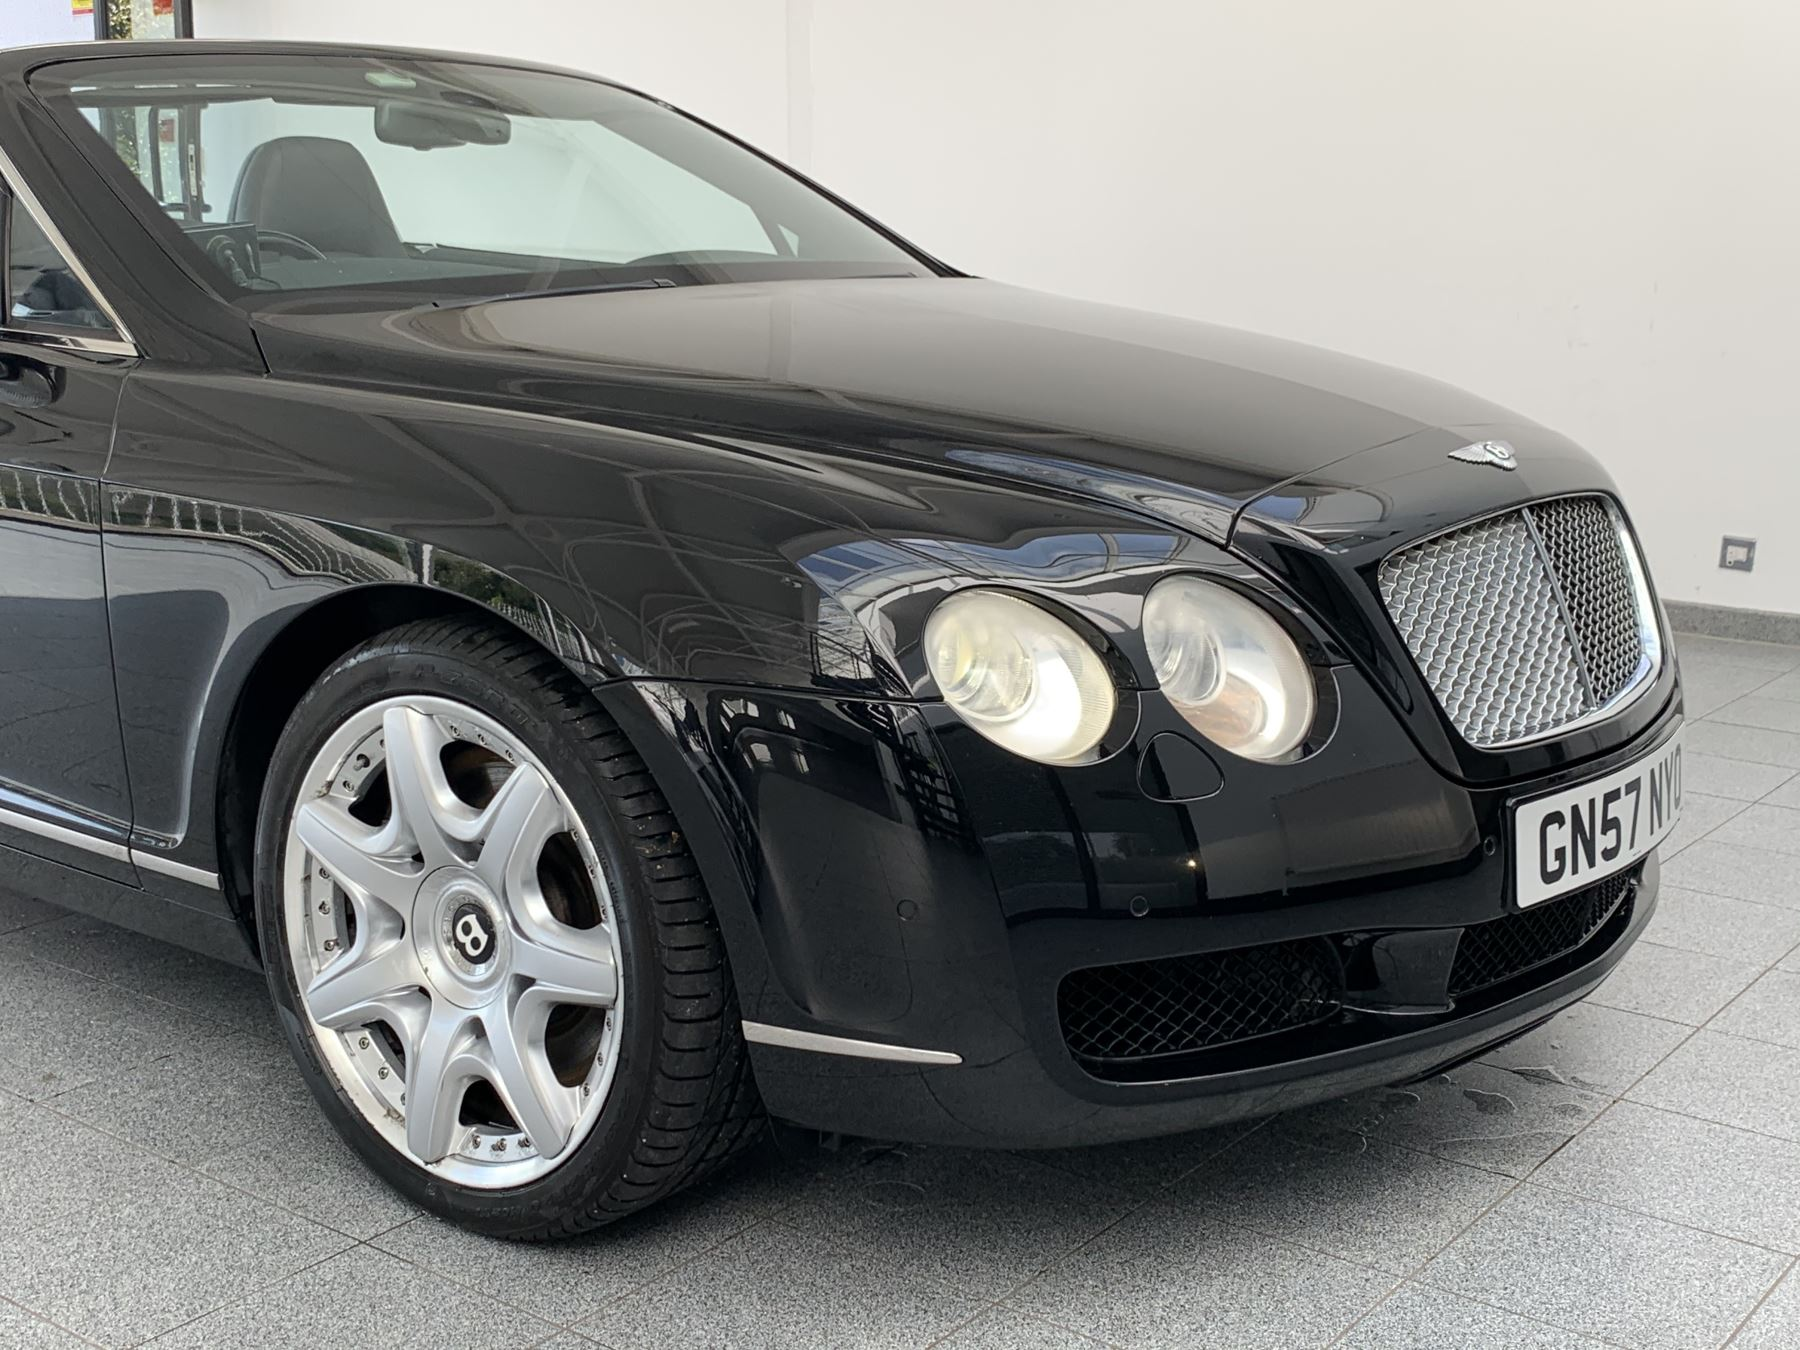 Bentley Continental GTC 6.0 W12 Mulliner 2dr image 7